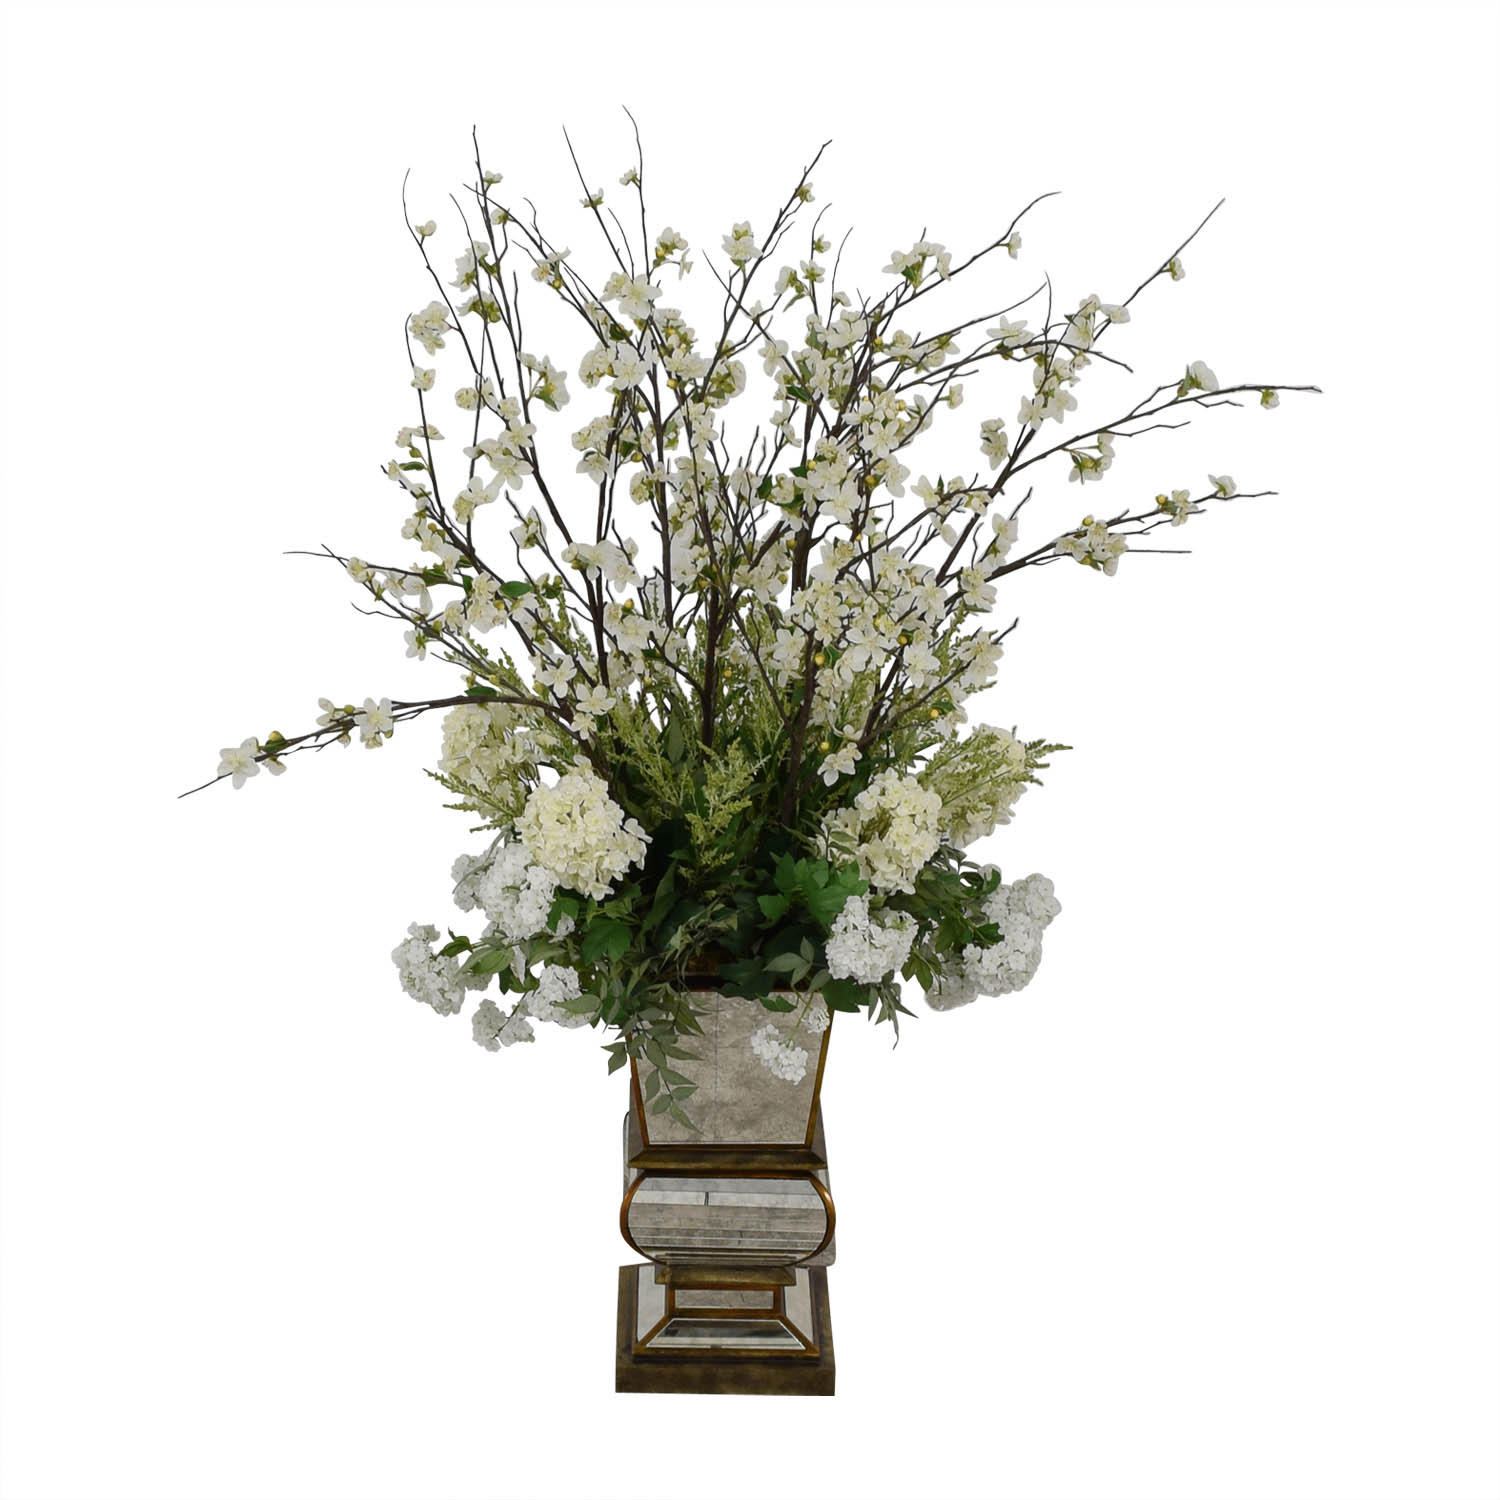 buy Jonathan-Richard White Flowers in Mirrored Base Jonathan-Richard Decorative Accents